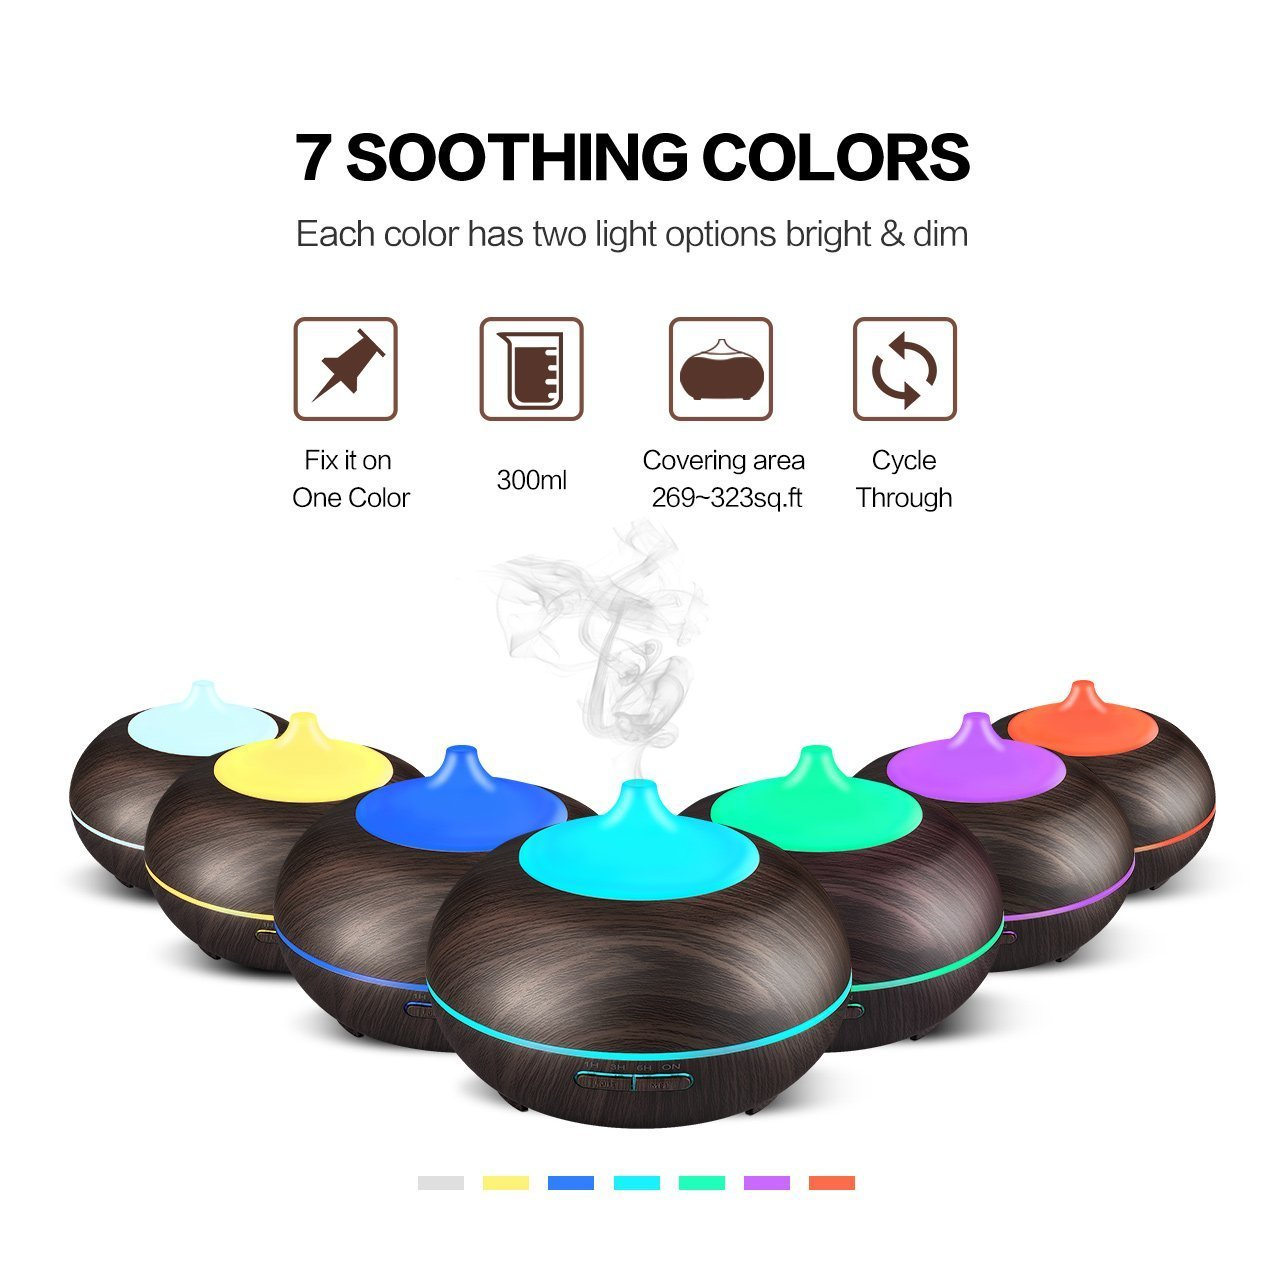 Essential Oil Diffuser, ALIKE 300ml Cool Mist Ultrasonic Aroma Diffuser, Cool Air Diffuser Wood Grain Humidifier with Waterless Automatically Shut-Off for Office Home Yoga Spa-Black